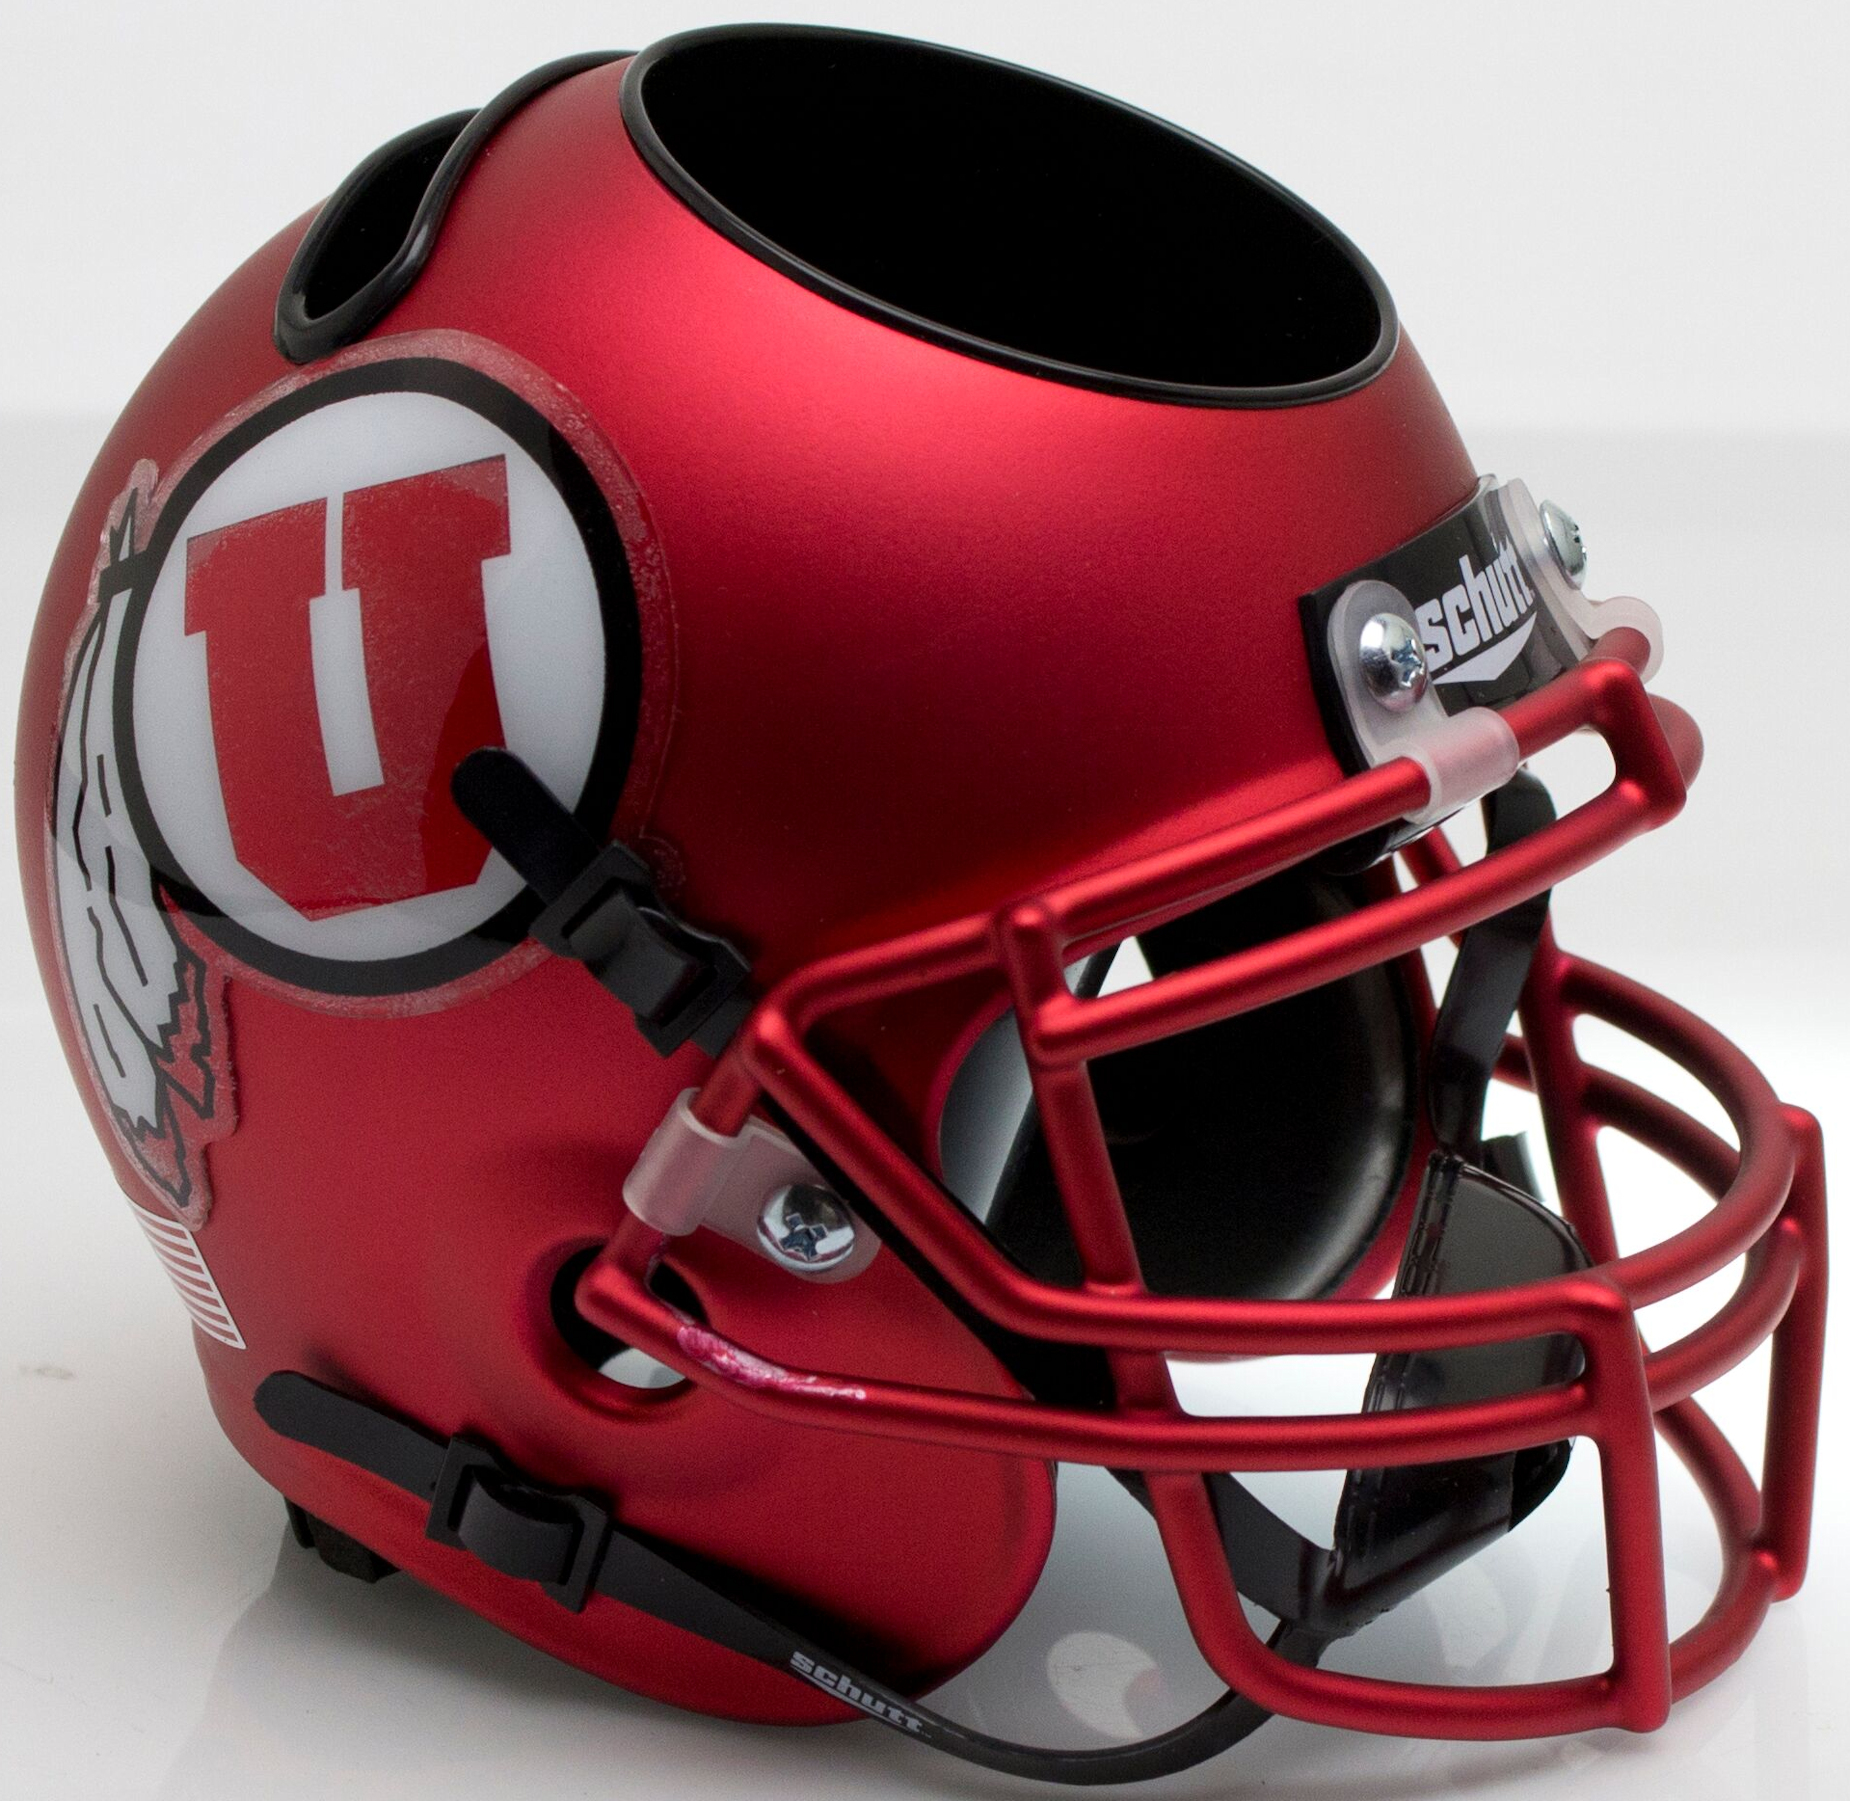 Utah Utes Miniature Football Helmet Desk Caddy <B>Satin Red</B>